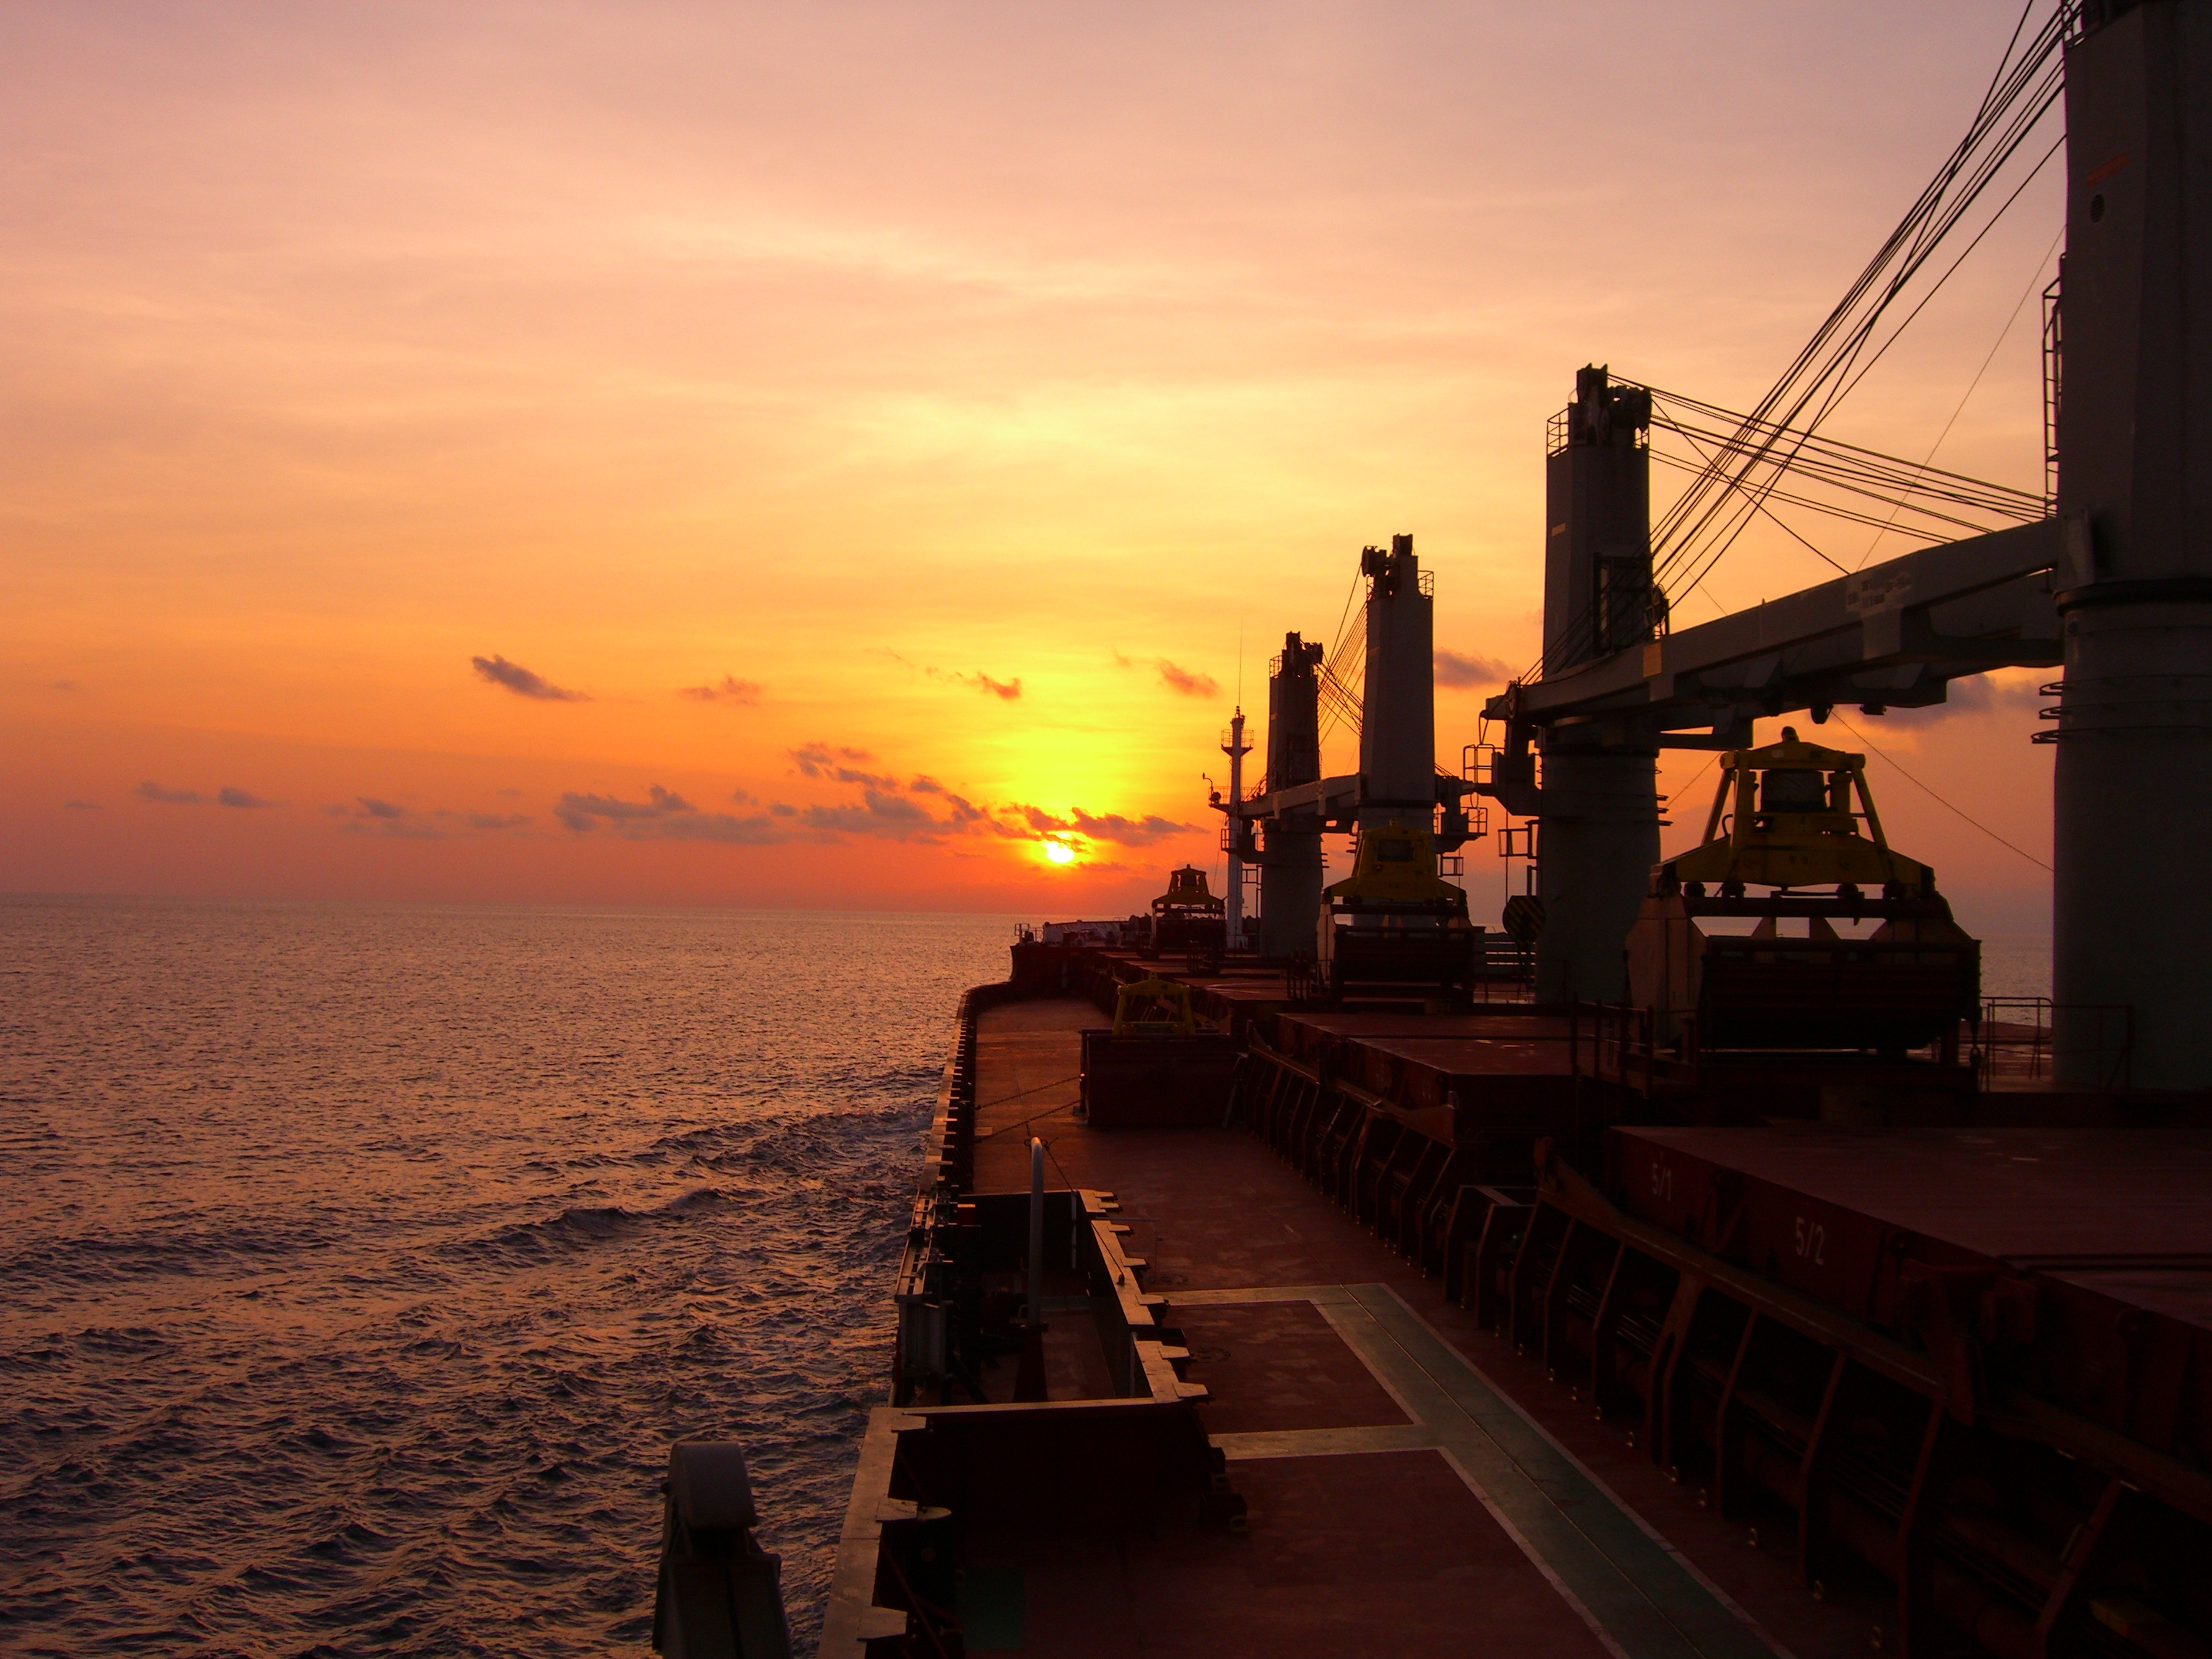 Bulker_at_sunset.JPG